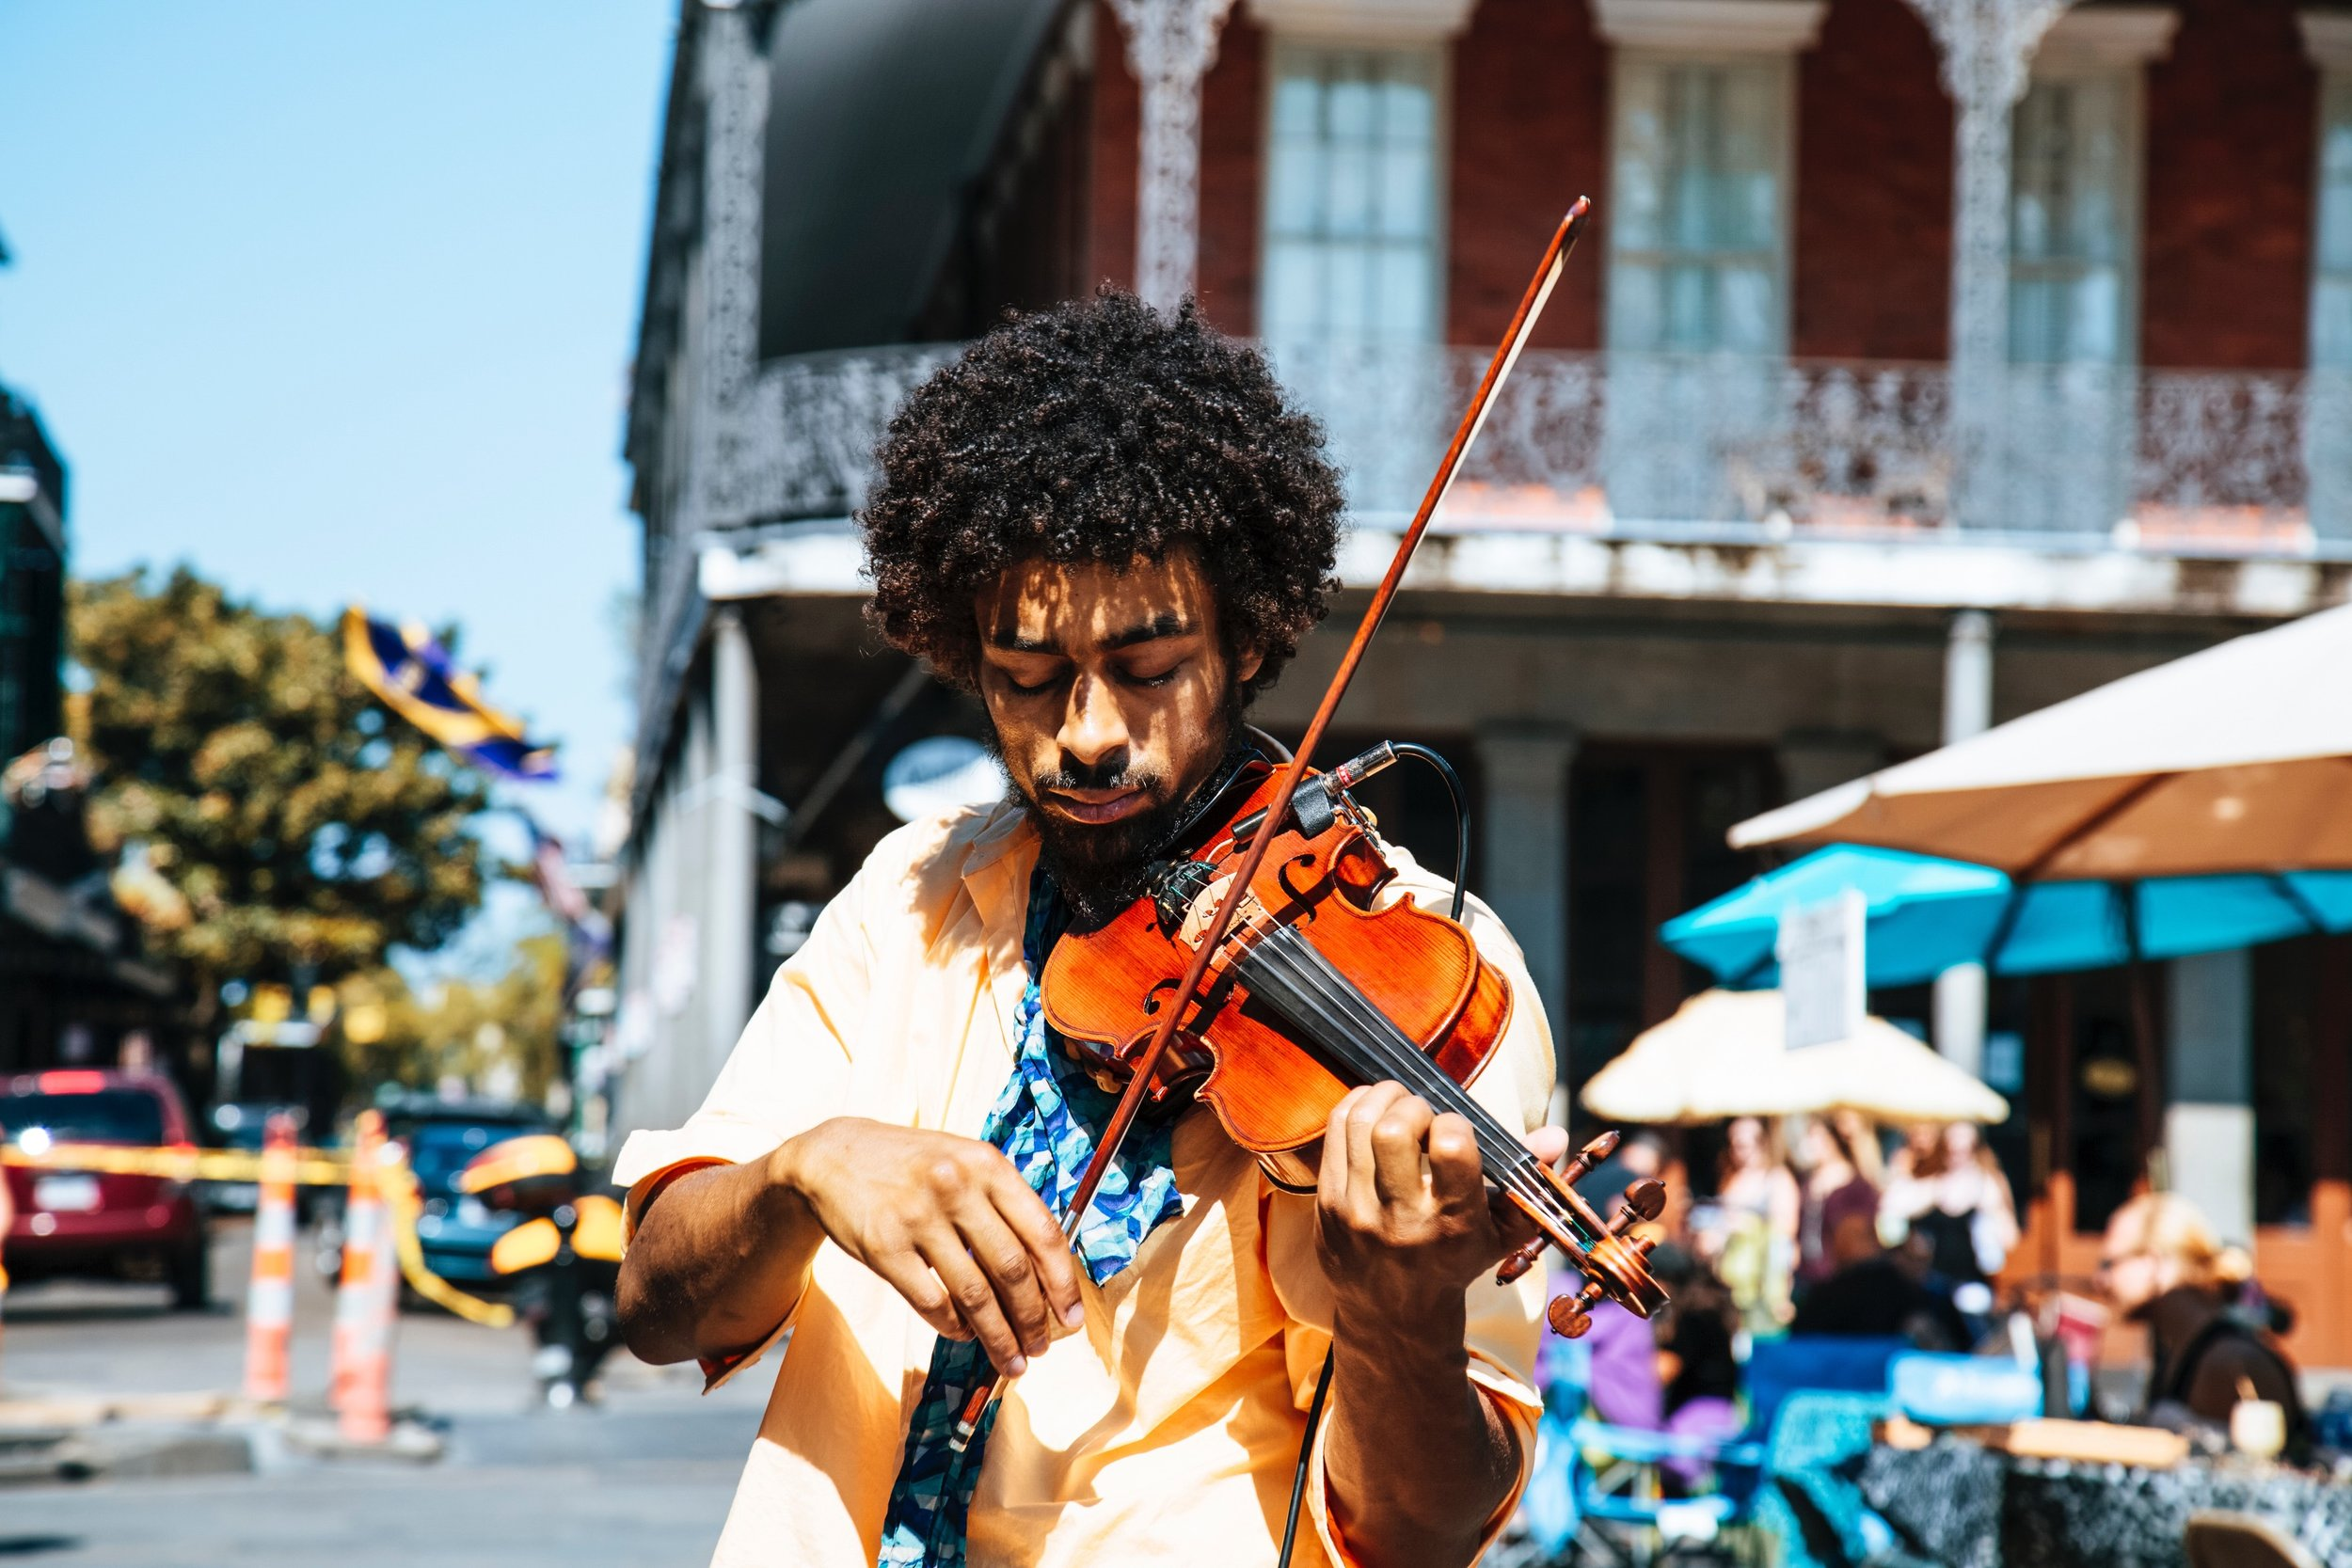 Left to Right: Live Music on the Streets of New Orleans (photo: William Recinos), Sunset over the Mississippi